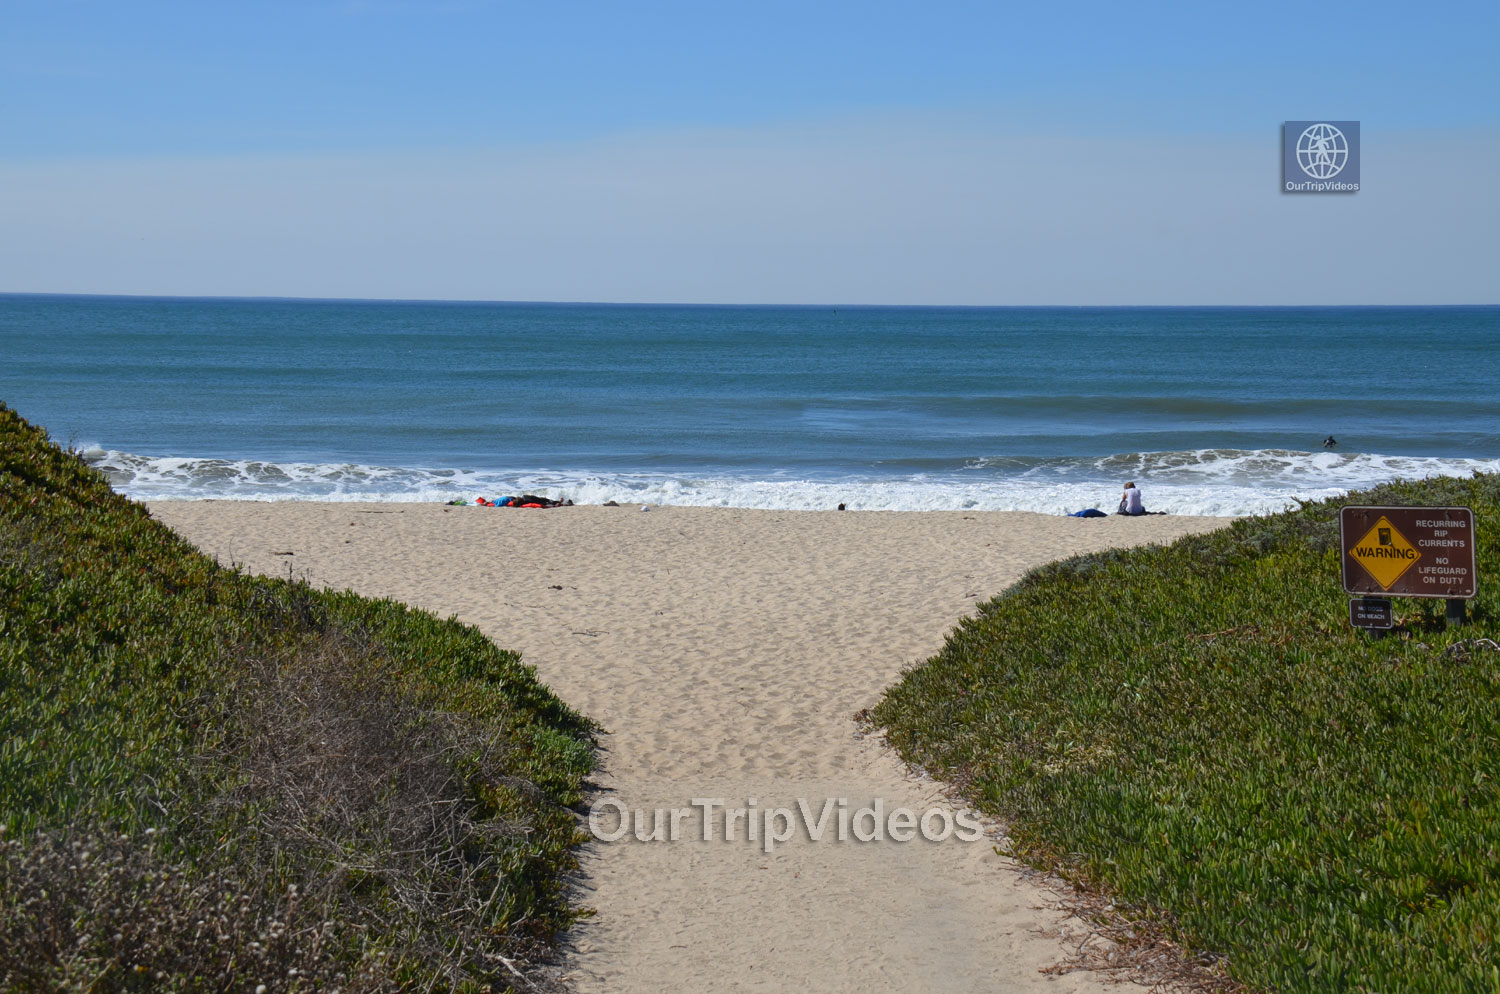 State Beach(Francis Beach), Half Moon Bay, CA, USA - Picture 3 of 25